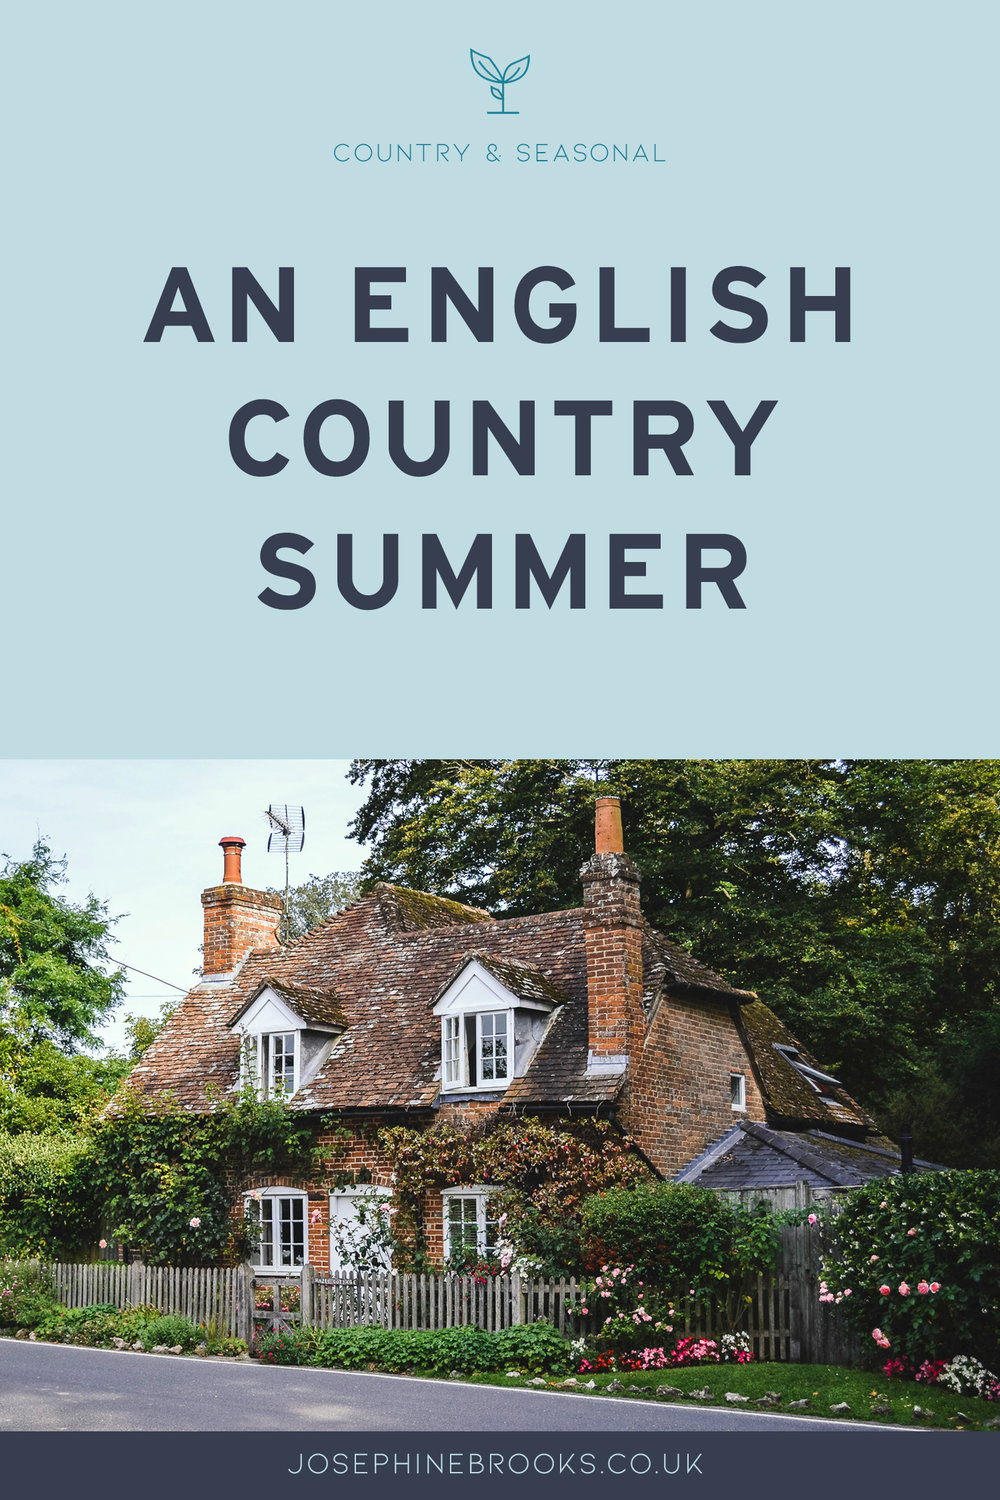 An English Country Summer in Hampshire UK, Cute country cottage.English summer time in the countryside.